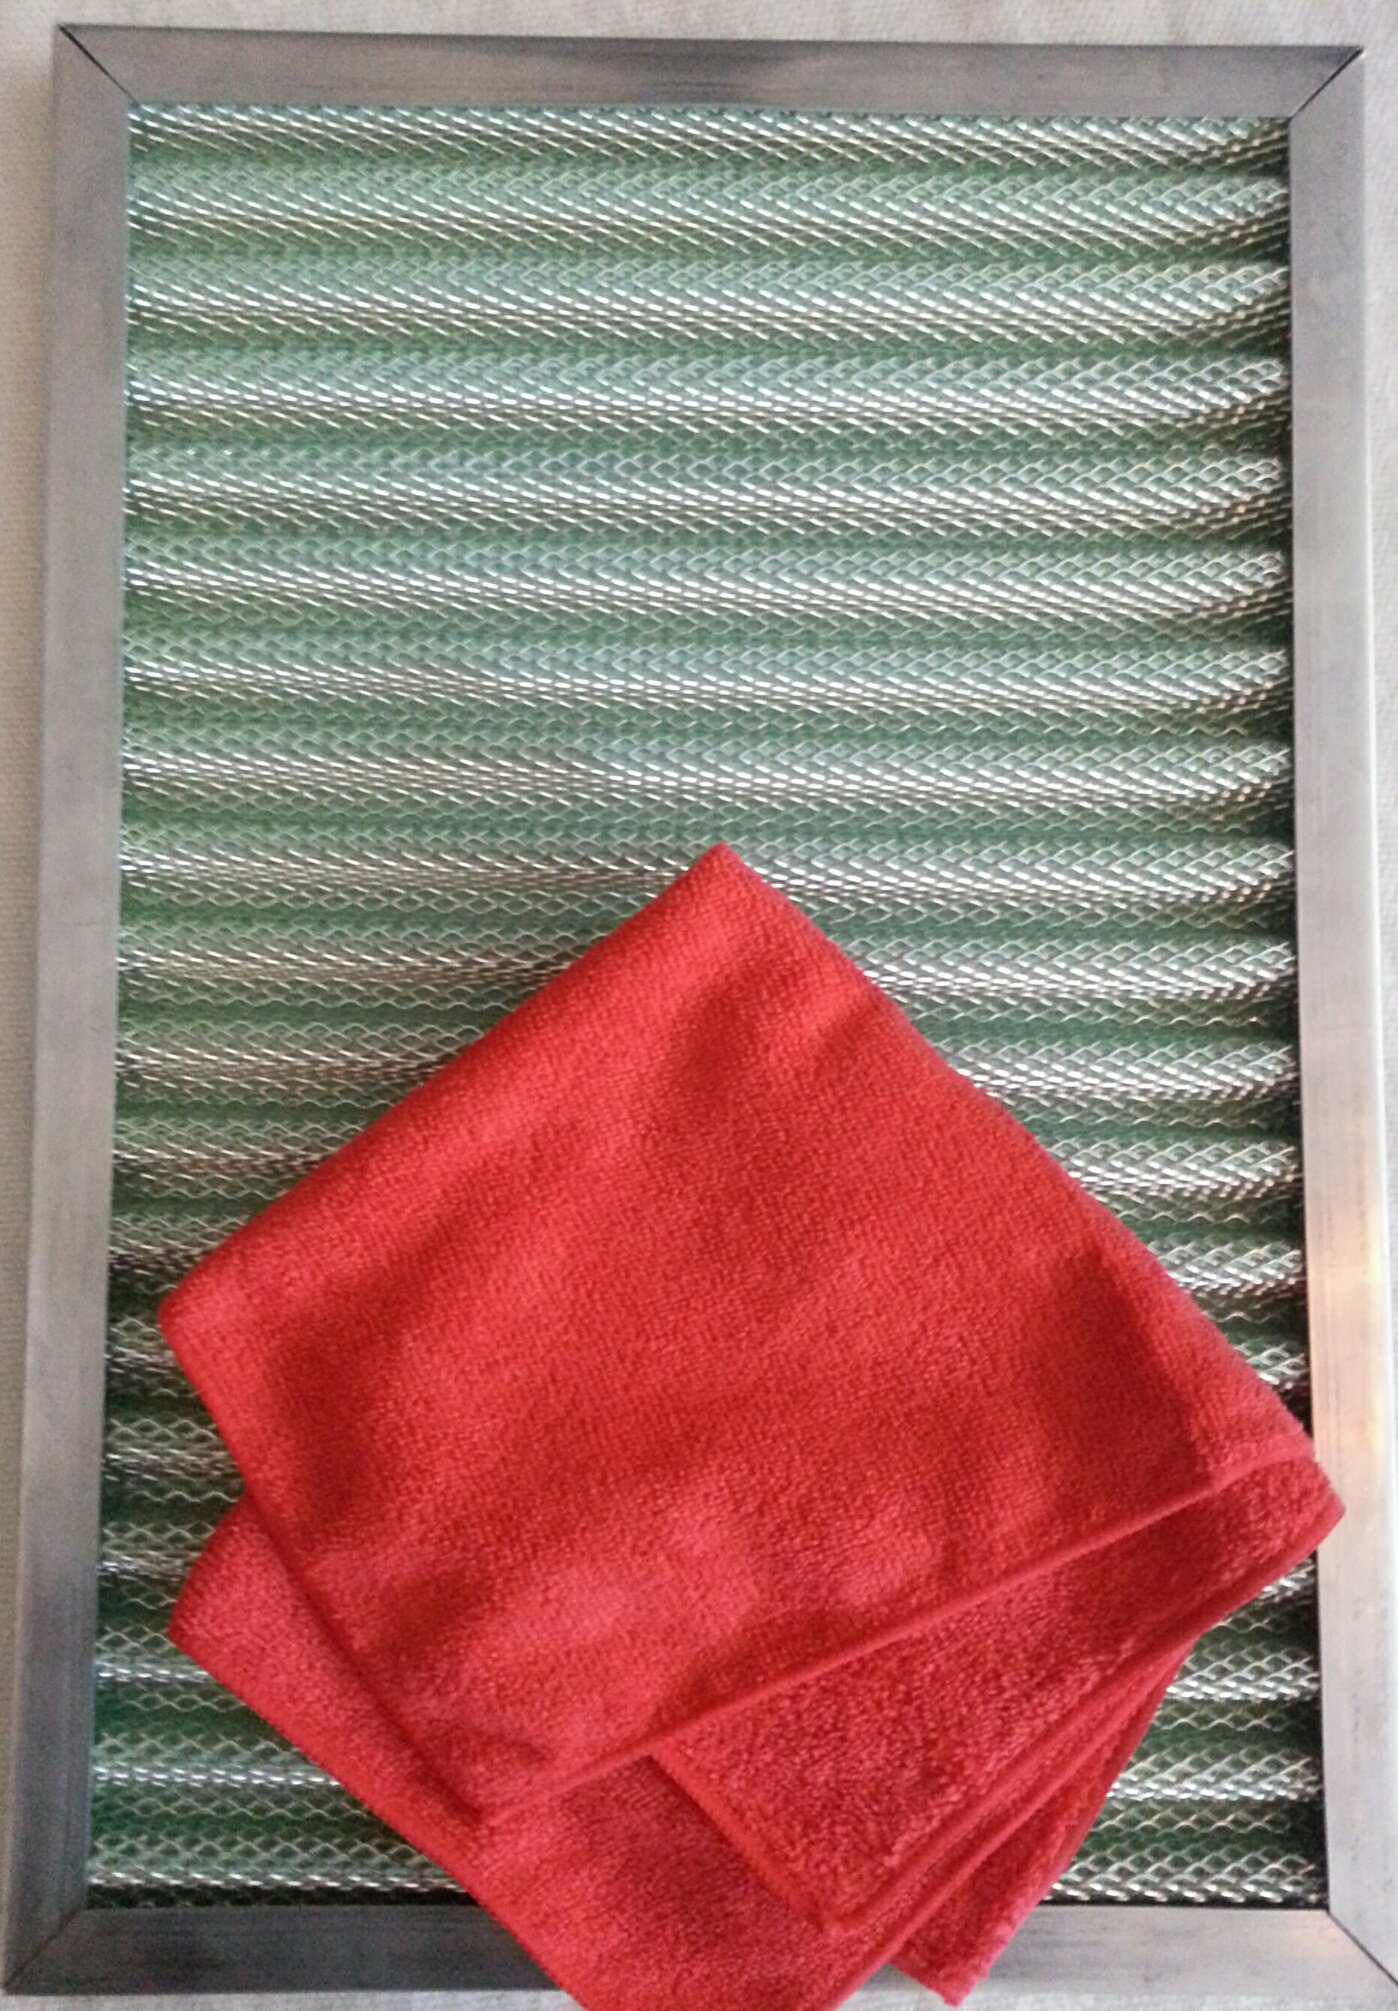 AIR FILTER PLEATED FOAM PERMANENT WASHABLE BEATS ELECTROSTATIC LASTS FOREVER ALUMINUM NOT CHEAP RUSTING GALVANIZED +FREE SUPER MICROFIBER DUSTING CLOTH (14X24X1)